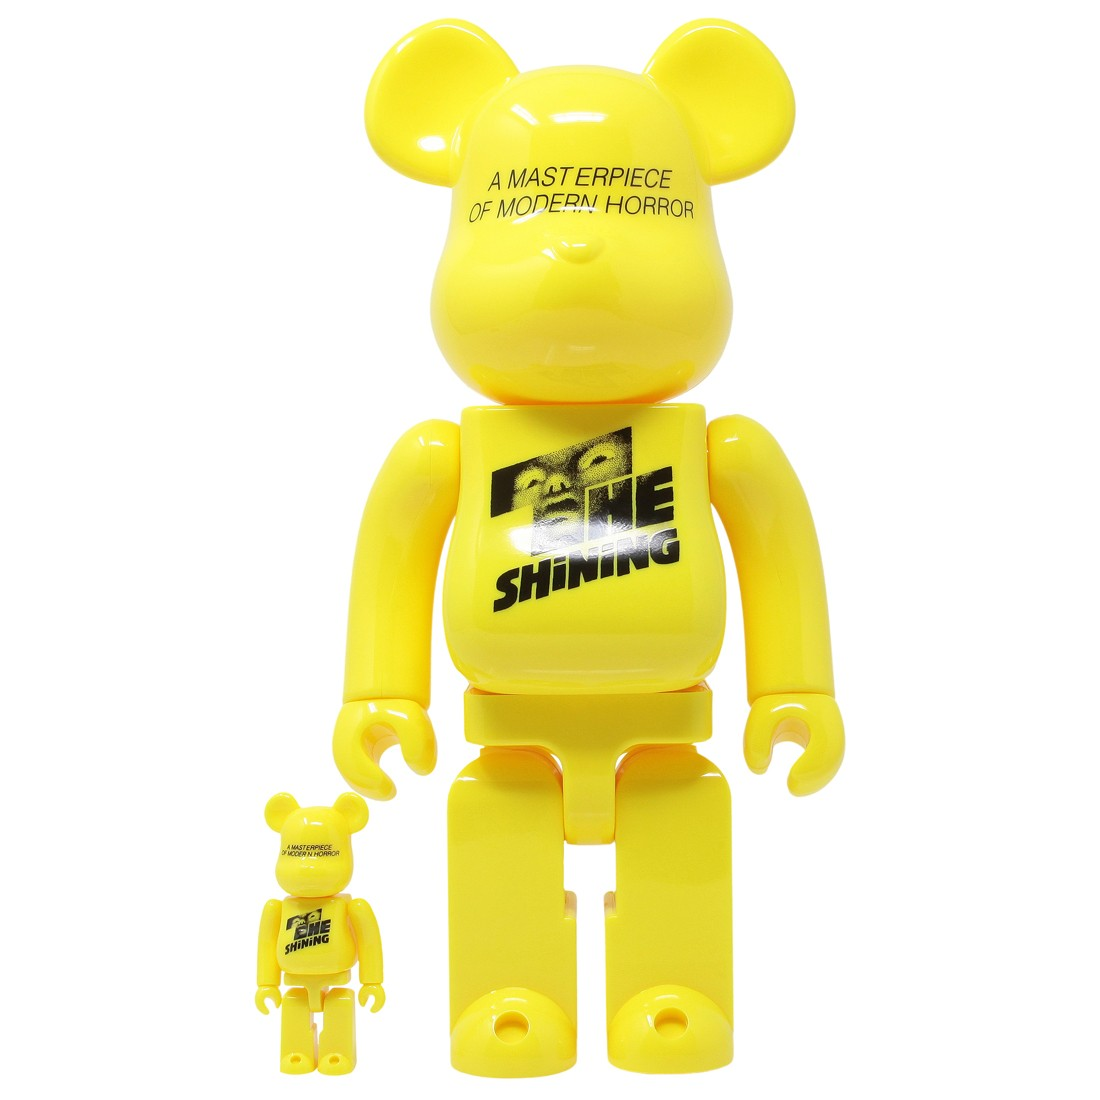 Medicom Stanley Kubrick The Shining Poster Ver. 100% 400% Bearbrick Figure Set (yellow)